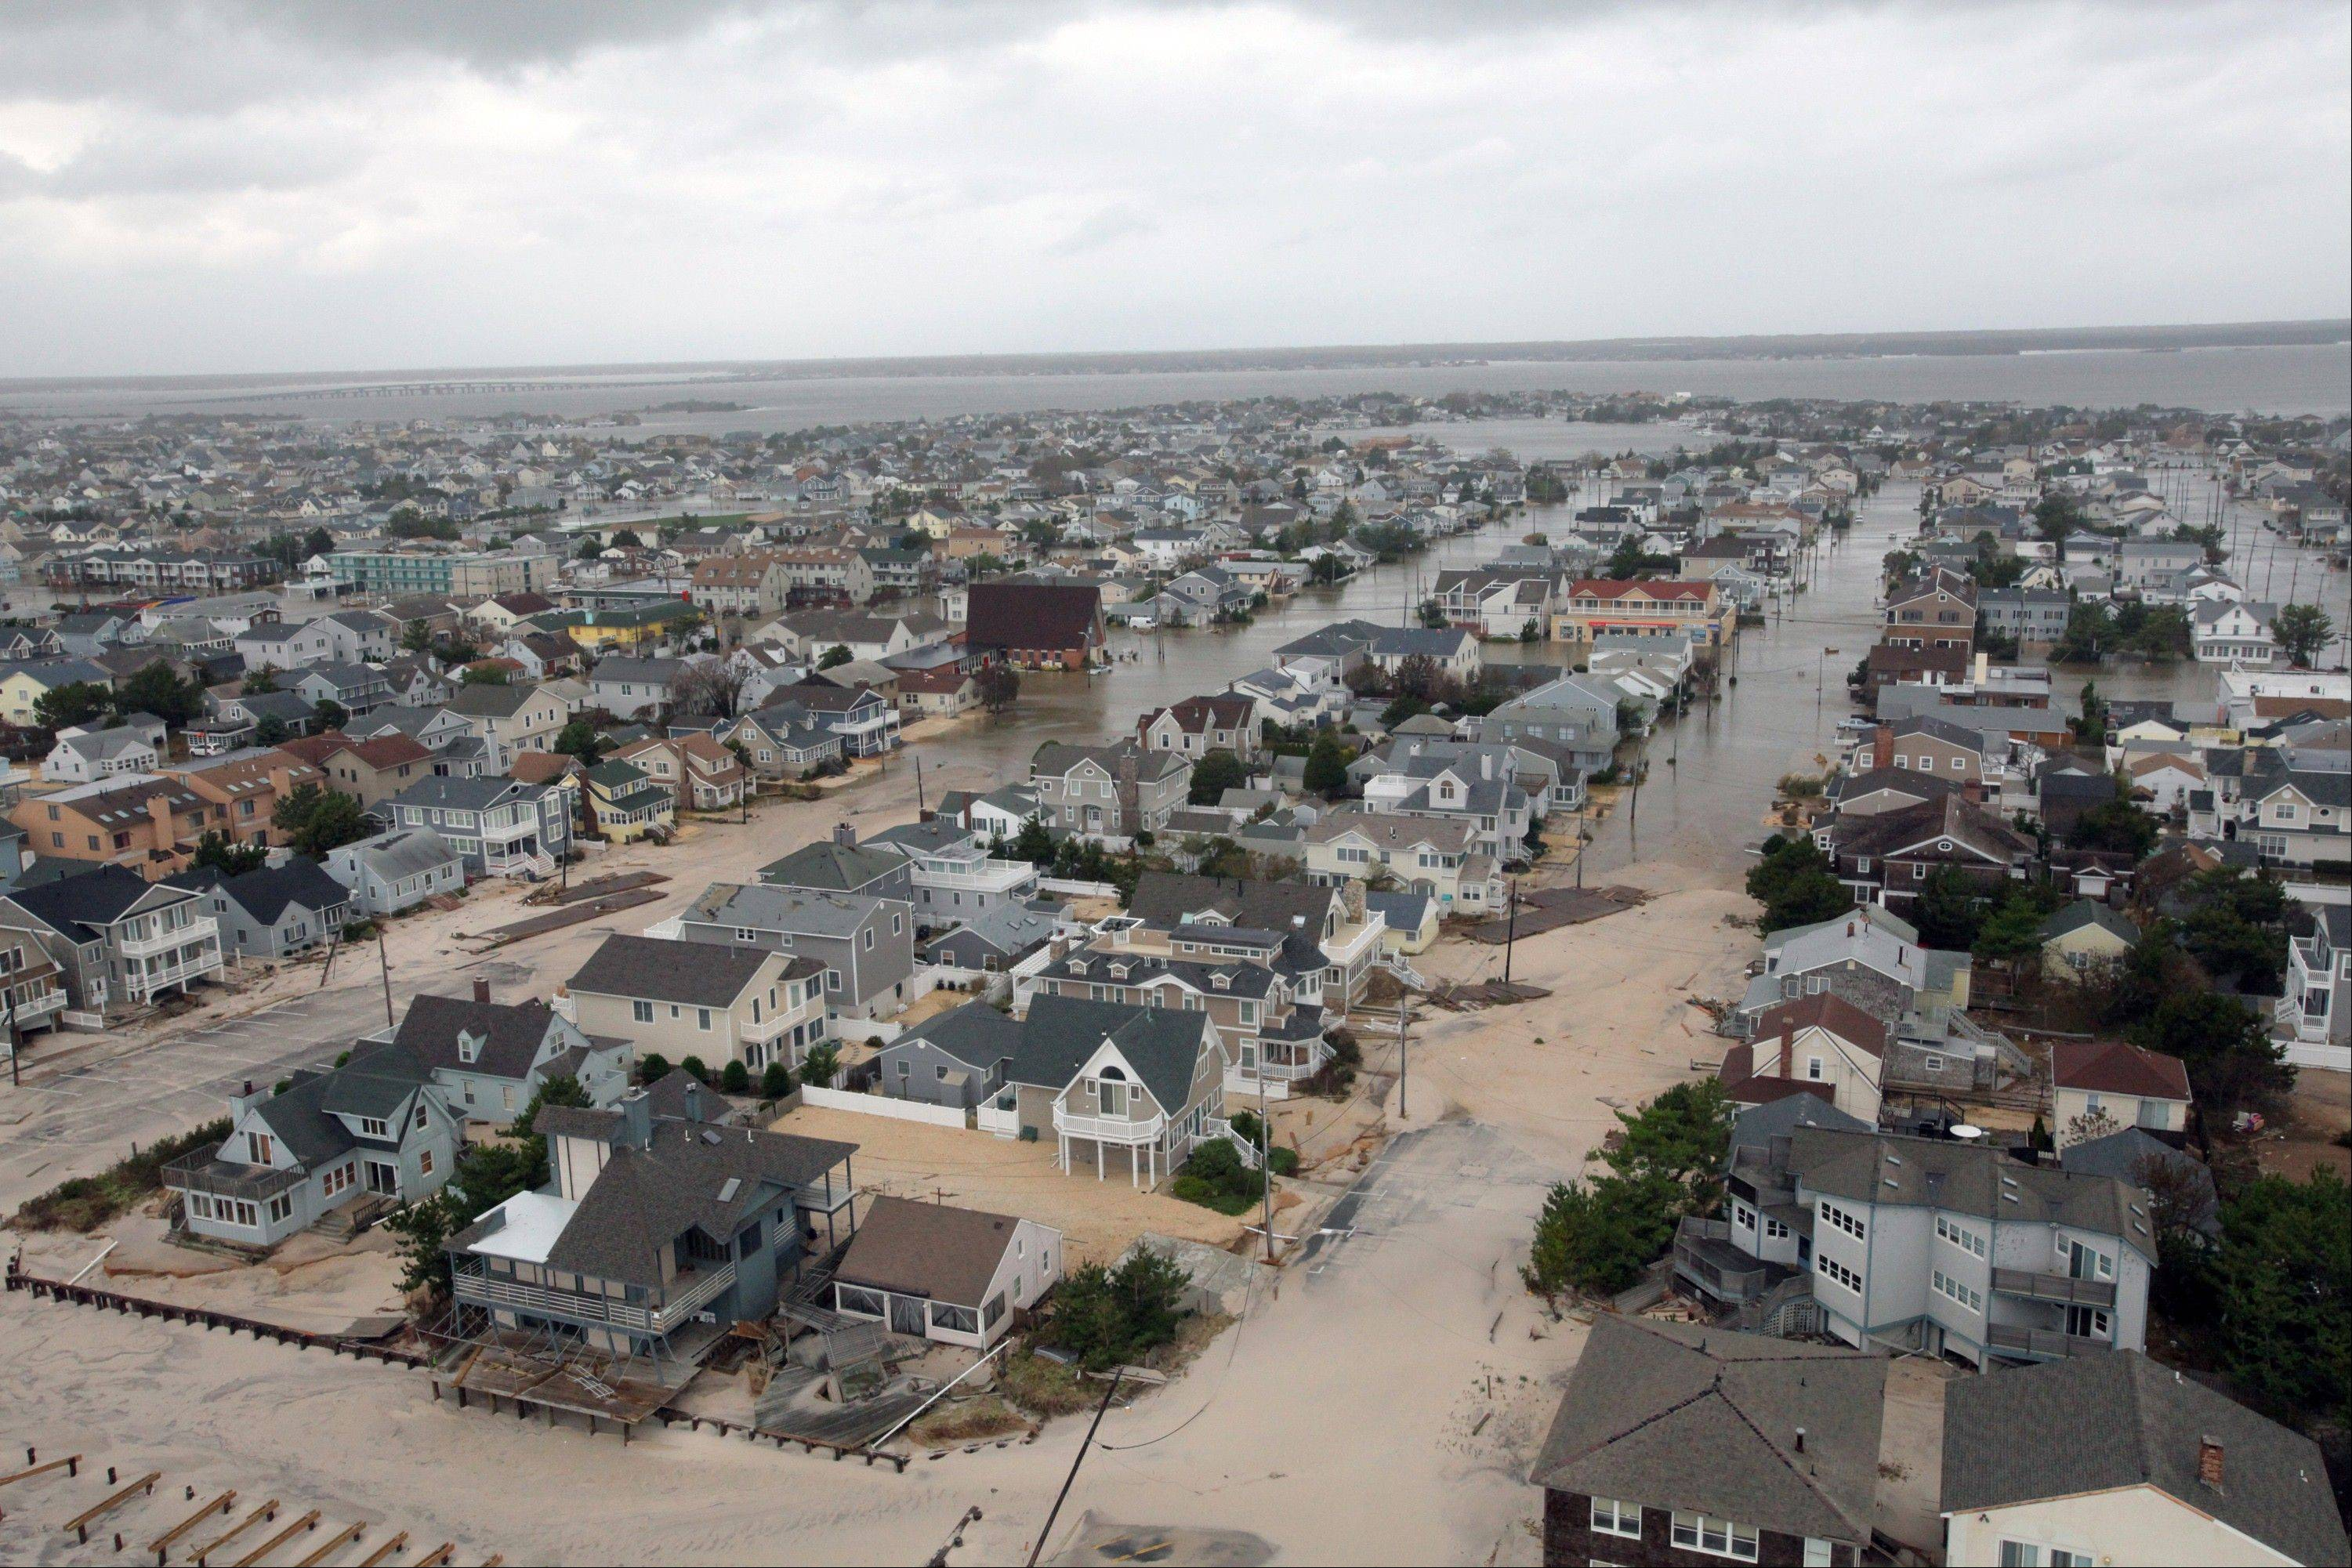 This Tuesday, Oct. 30, 2012 an aerial photo provided by the U.S. Air Force shows damage to the New Jersey shoreline during a search, taken during a search and rescue mission by 1-150 Assault Helicopter Battalion, New Jersey Army National Guard. By late Tuesday, the winds and flooding inflicted by the fast-weakening superstorm Sandy had subsided, leaving at least 55 people dead along the Atlantic Coast and splintering beachfront homes and boardwalks from the mid-Atlantic states to southern New England.